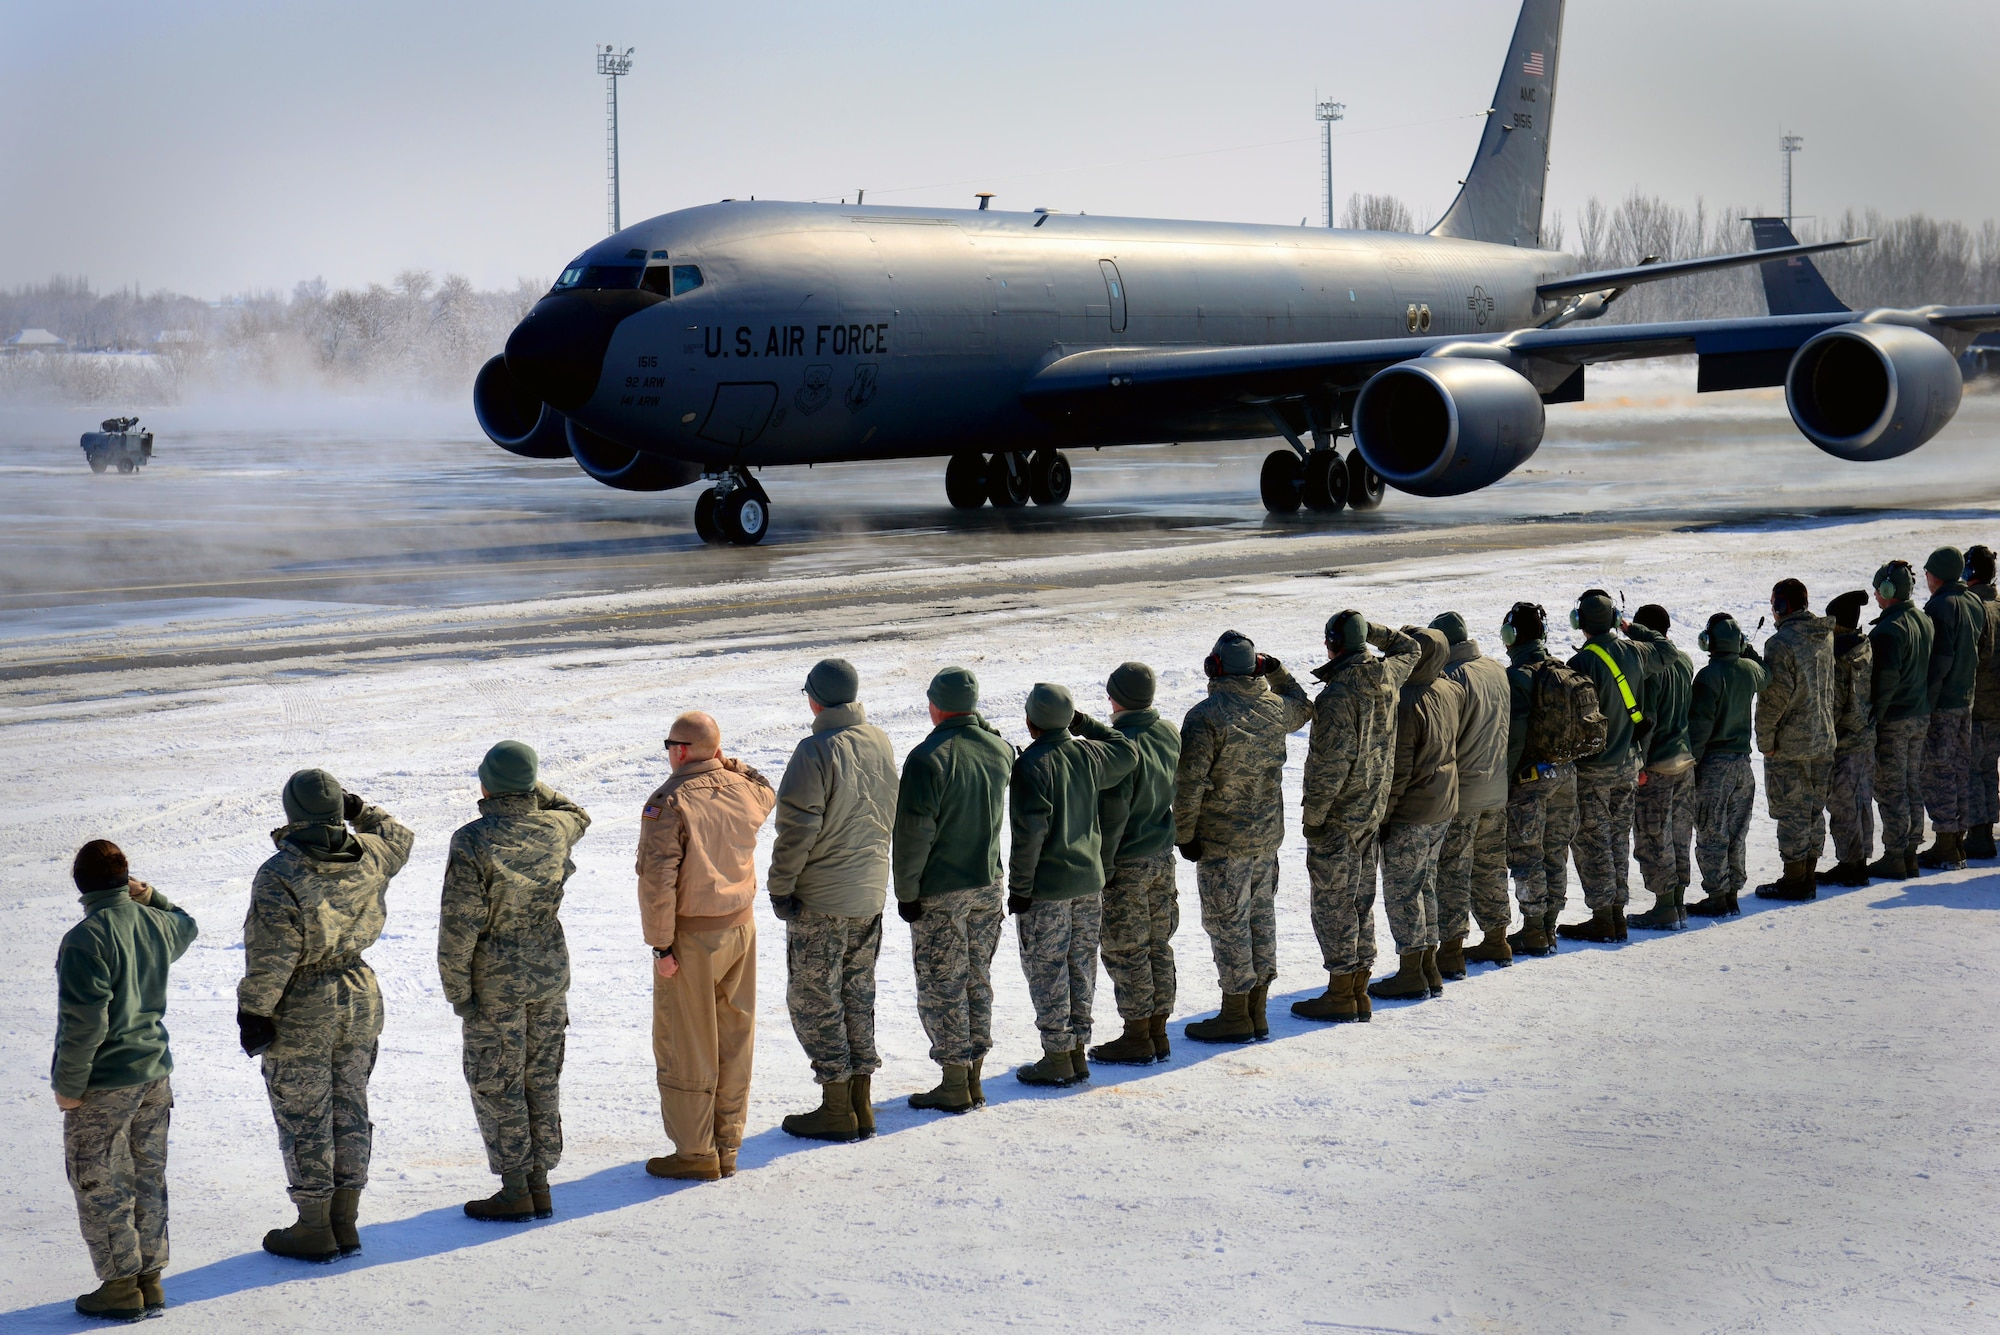 As a KC-135 Stratotanker taxis, the members of the 376th Air Expeditionary Wing salute Feb. 24, 2014, at Transit Center at Manas, Kyrgyzstan. The KC-135 departed the after the final refueling mission over Afghanistan from the Transit Center. (U.S. Air Force photo/Staff Sgt. Travis Edwards)